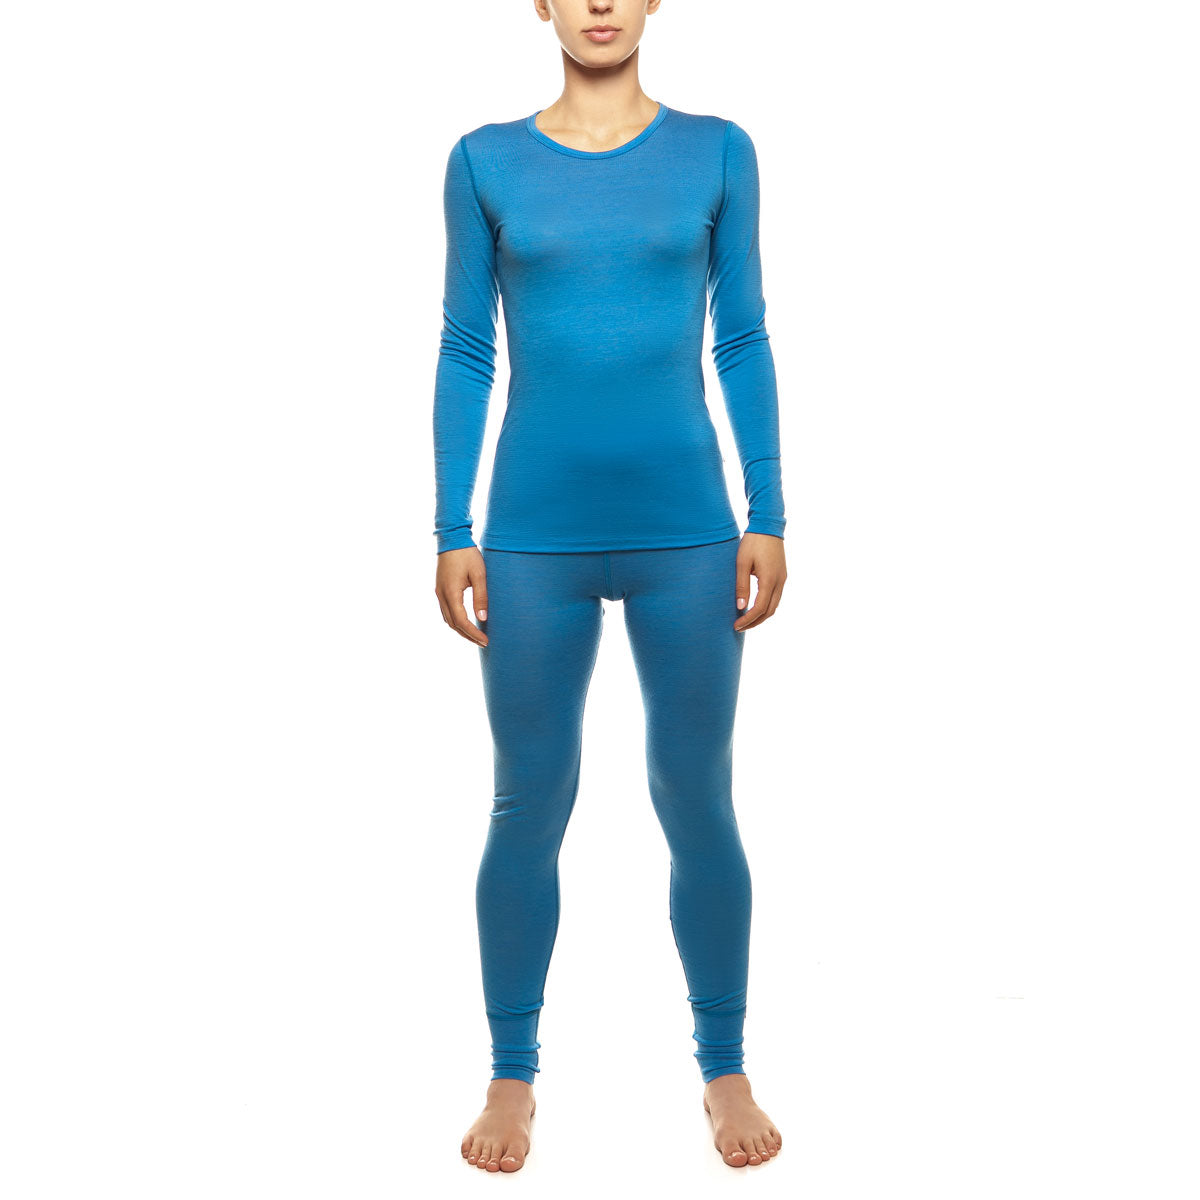 menique Women's Merino 160 Long Sleeve Set Light Blue Color